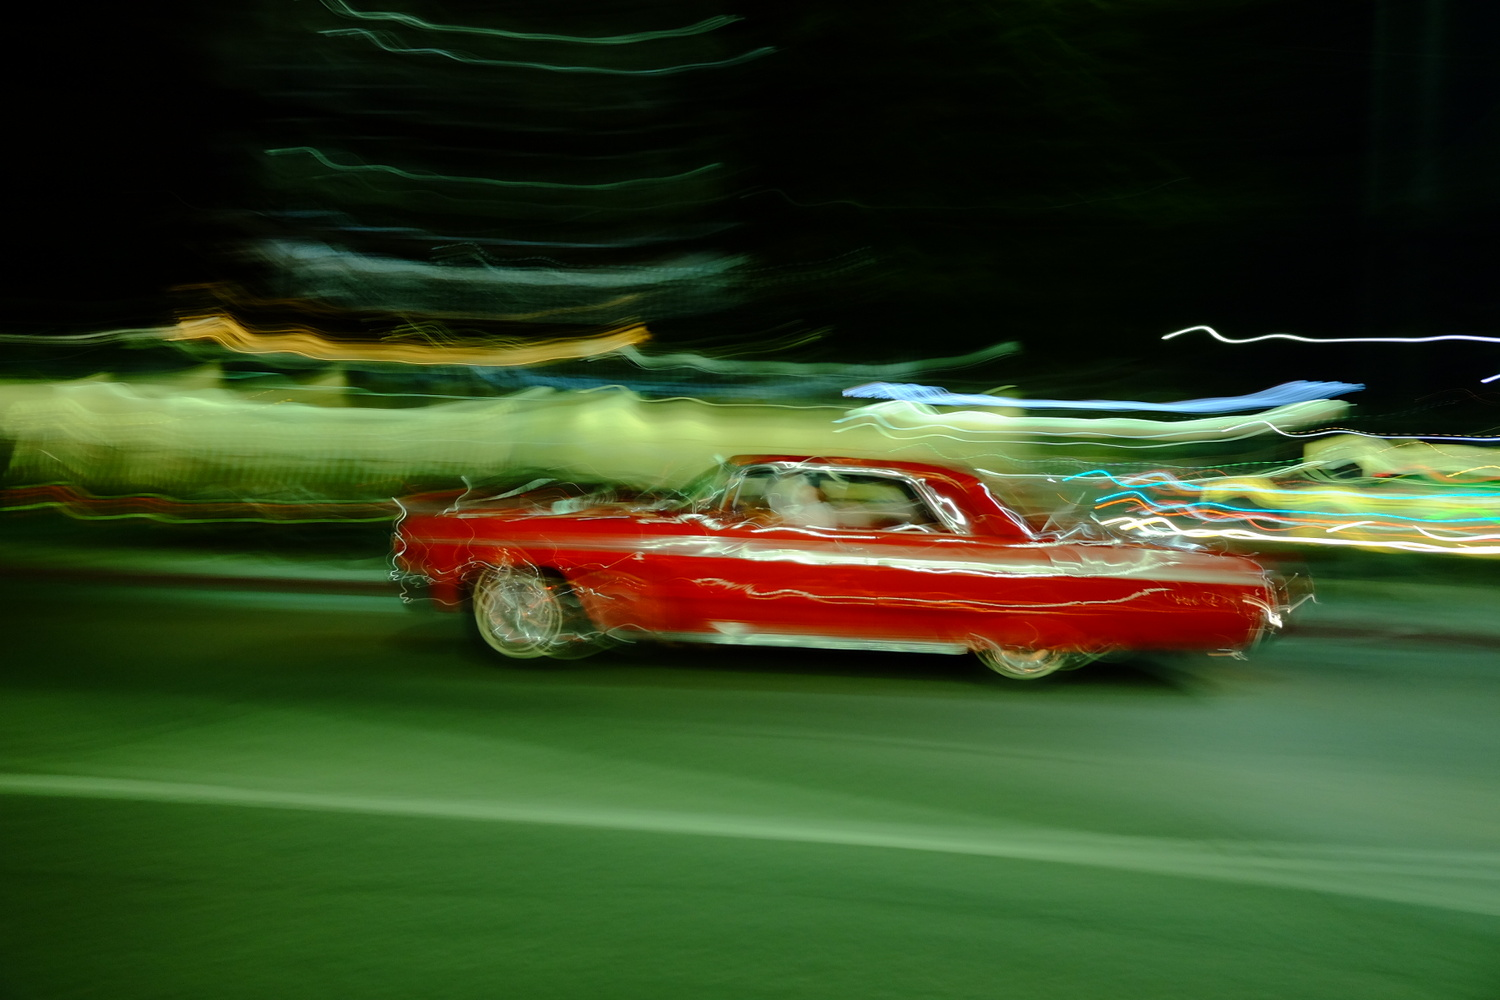 The red car by Simon blanc